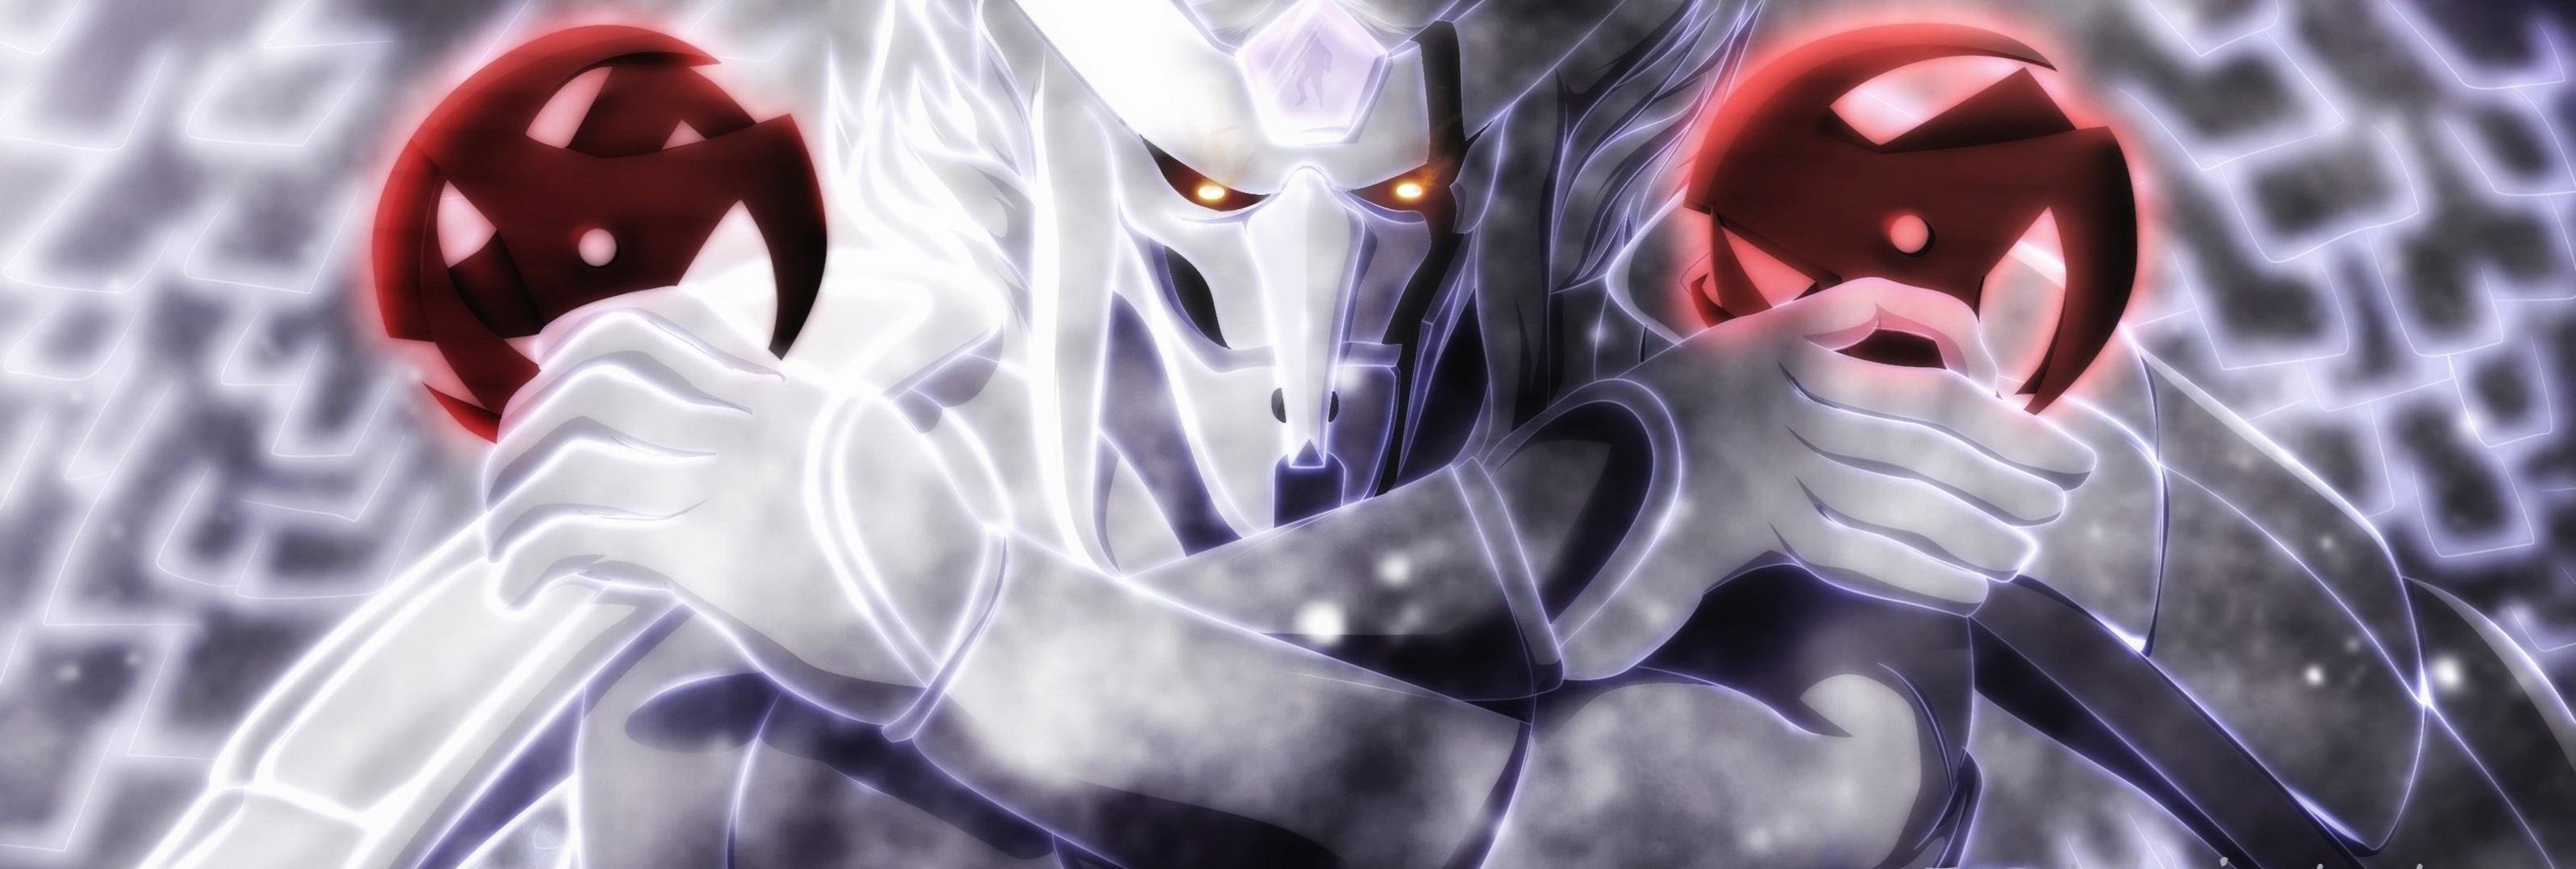 Download hd 3200x1080 Susanoo (Naruto) desktop background ID:396622 for free